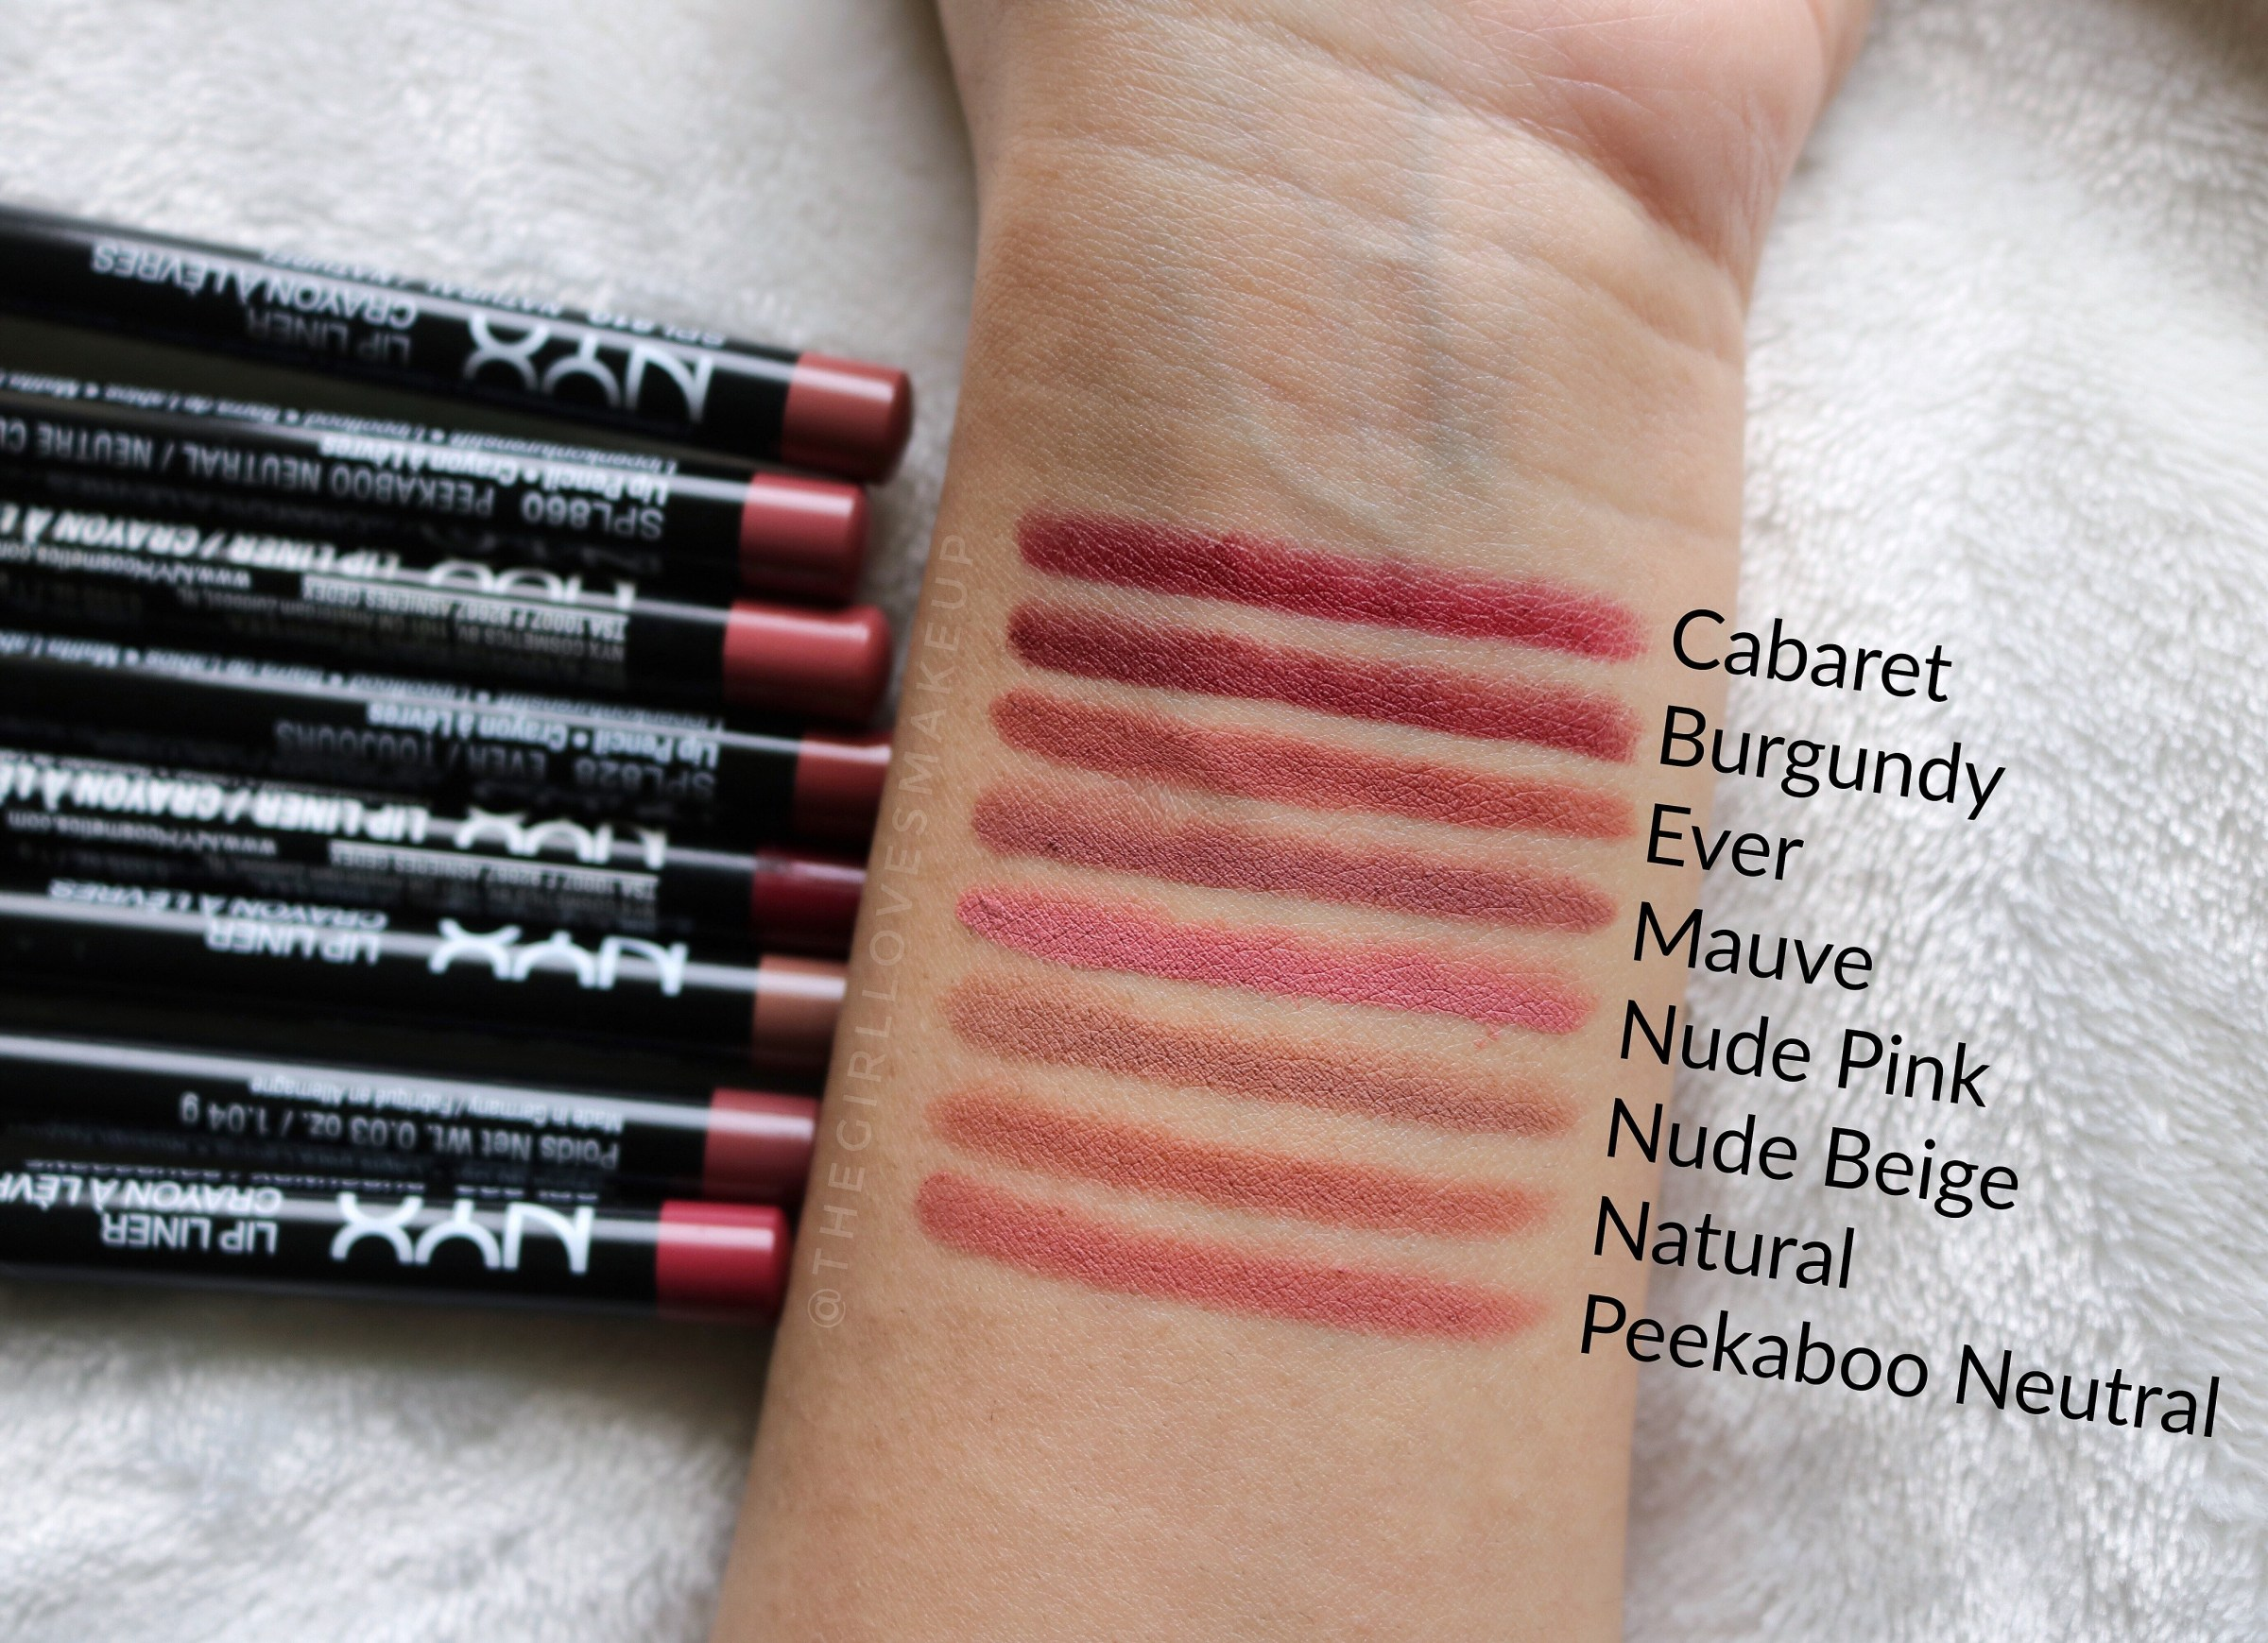 NYX-Professional-Makeup-Slim-Lip-Pencil-Review-and-Swatches-.jpg